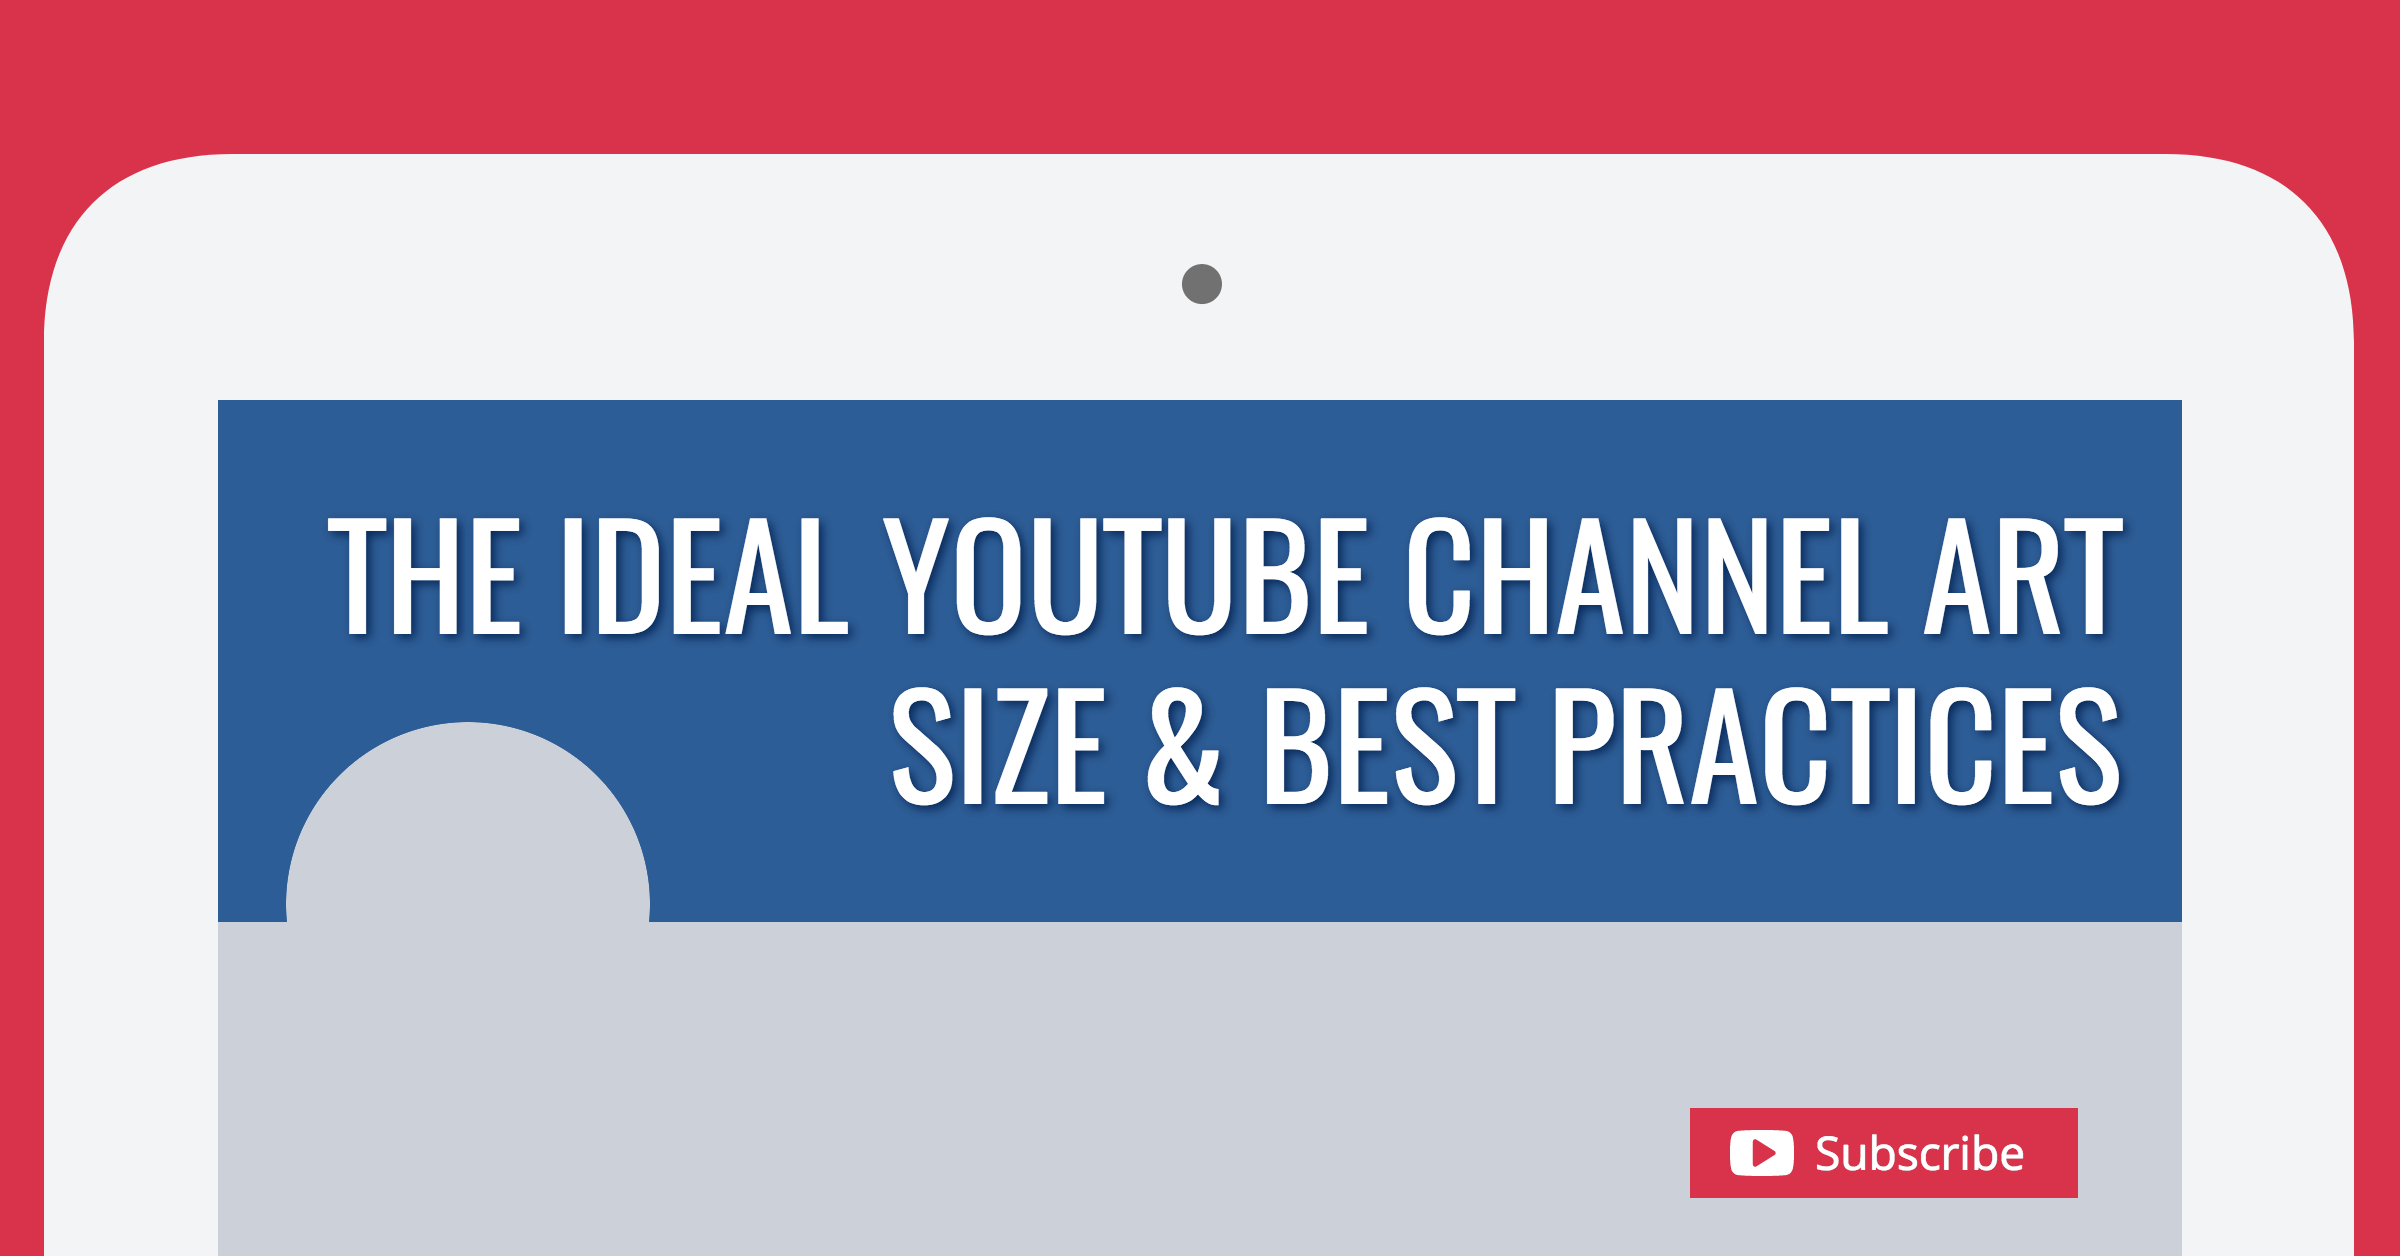 The ideal channel art. Youtube clipart banner